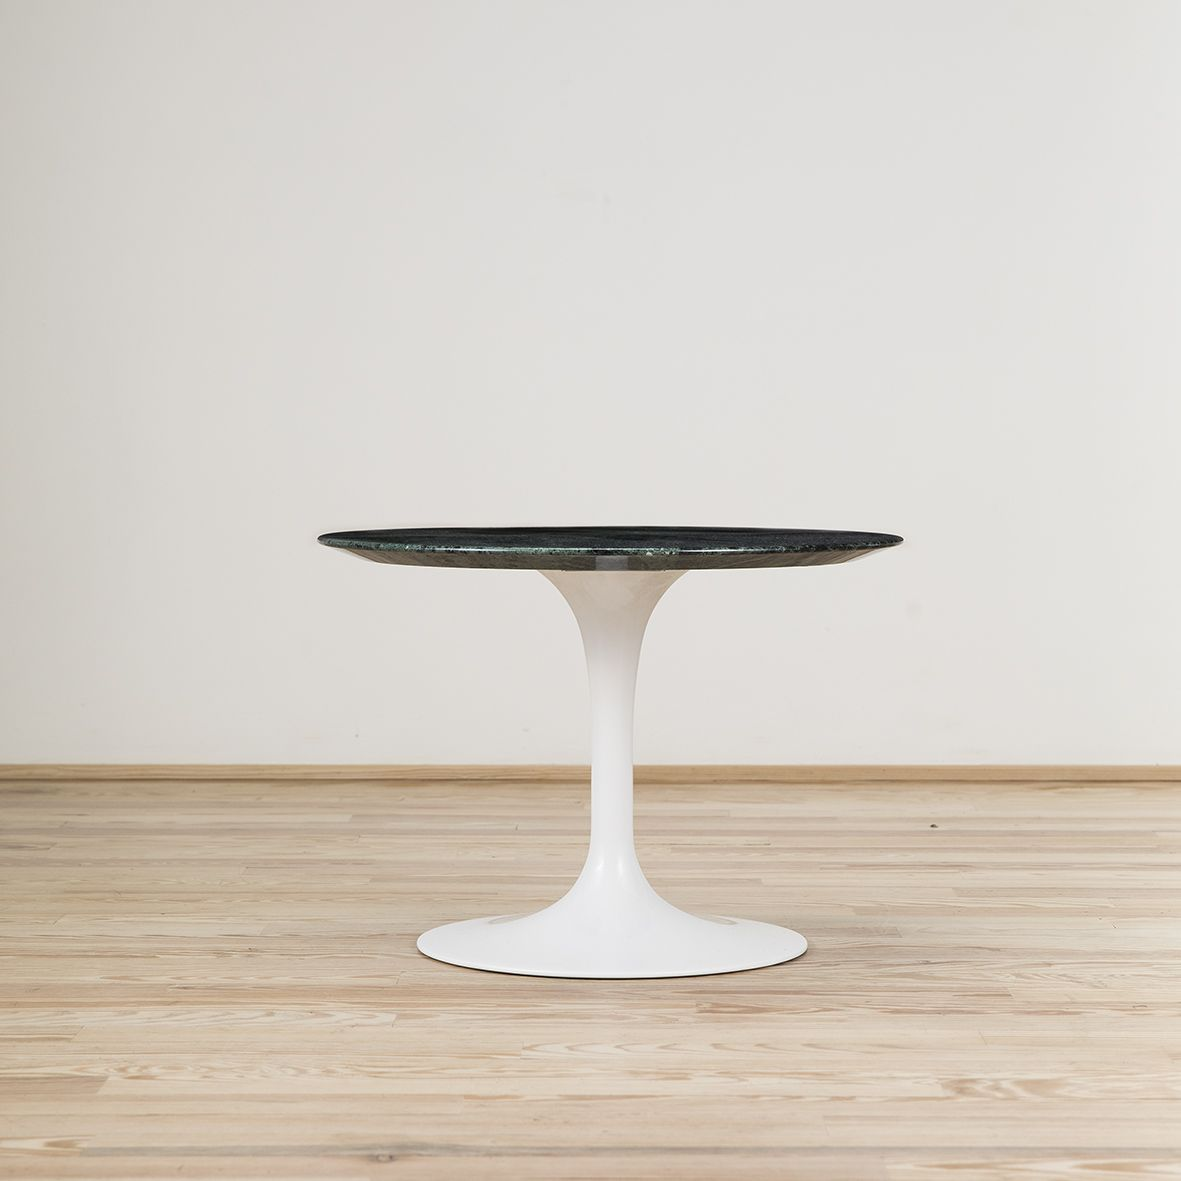 Saarinen Knoll Table Mesa Coffee Saarinen Stock Knoll